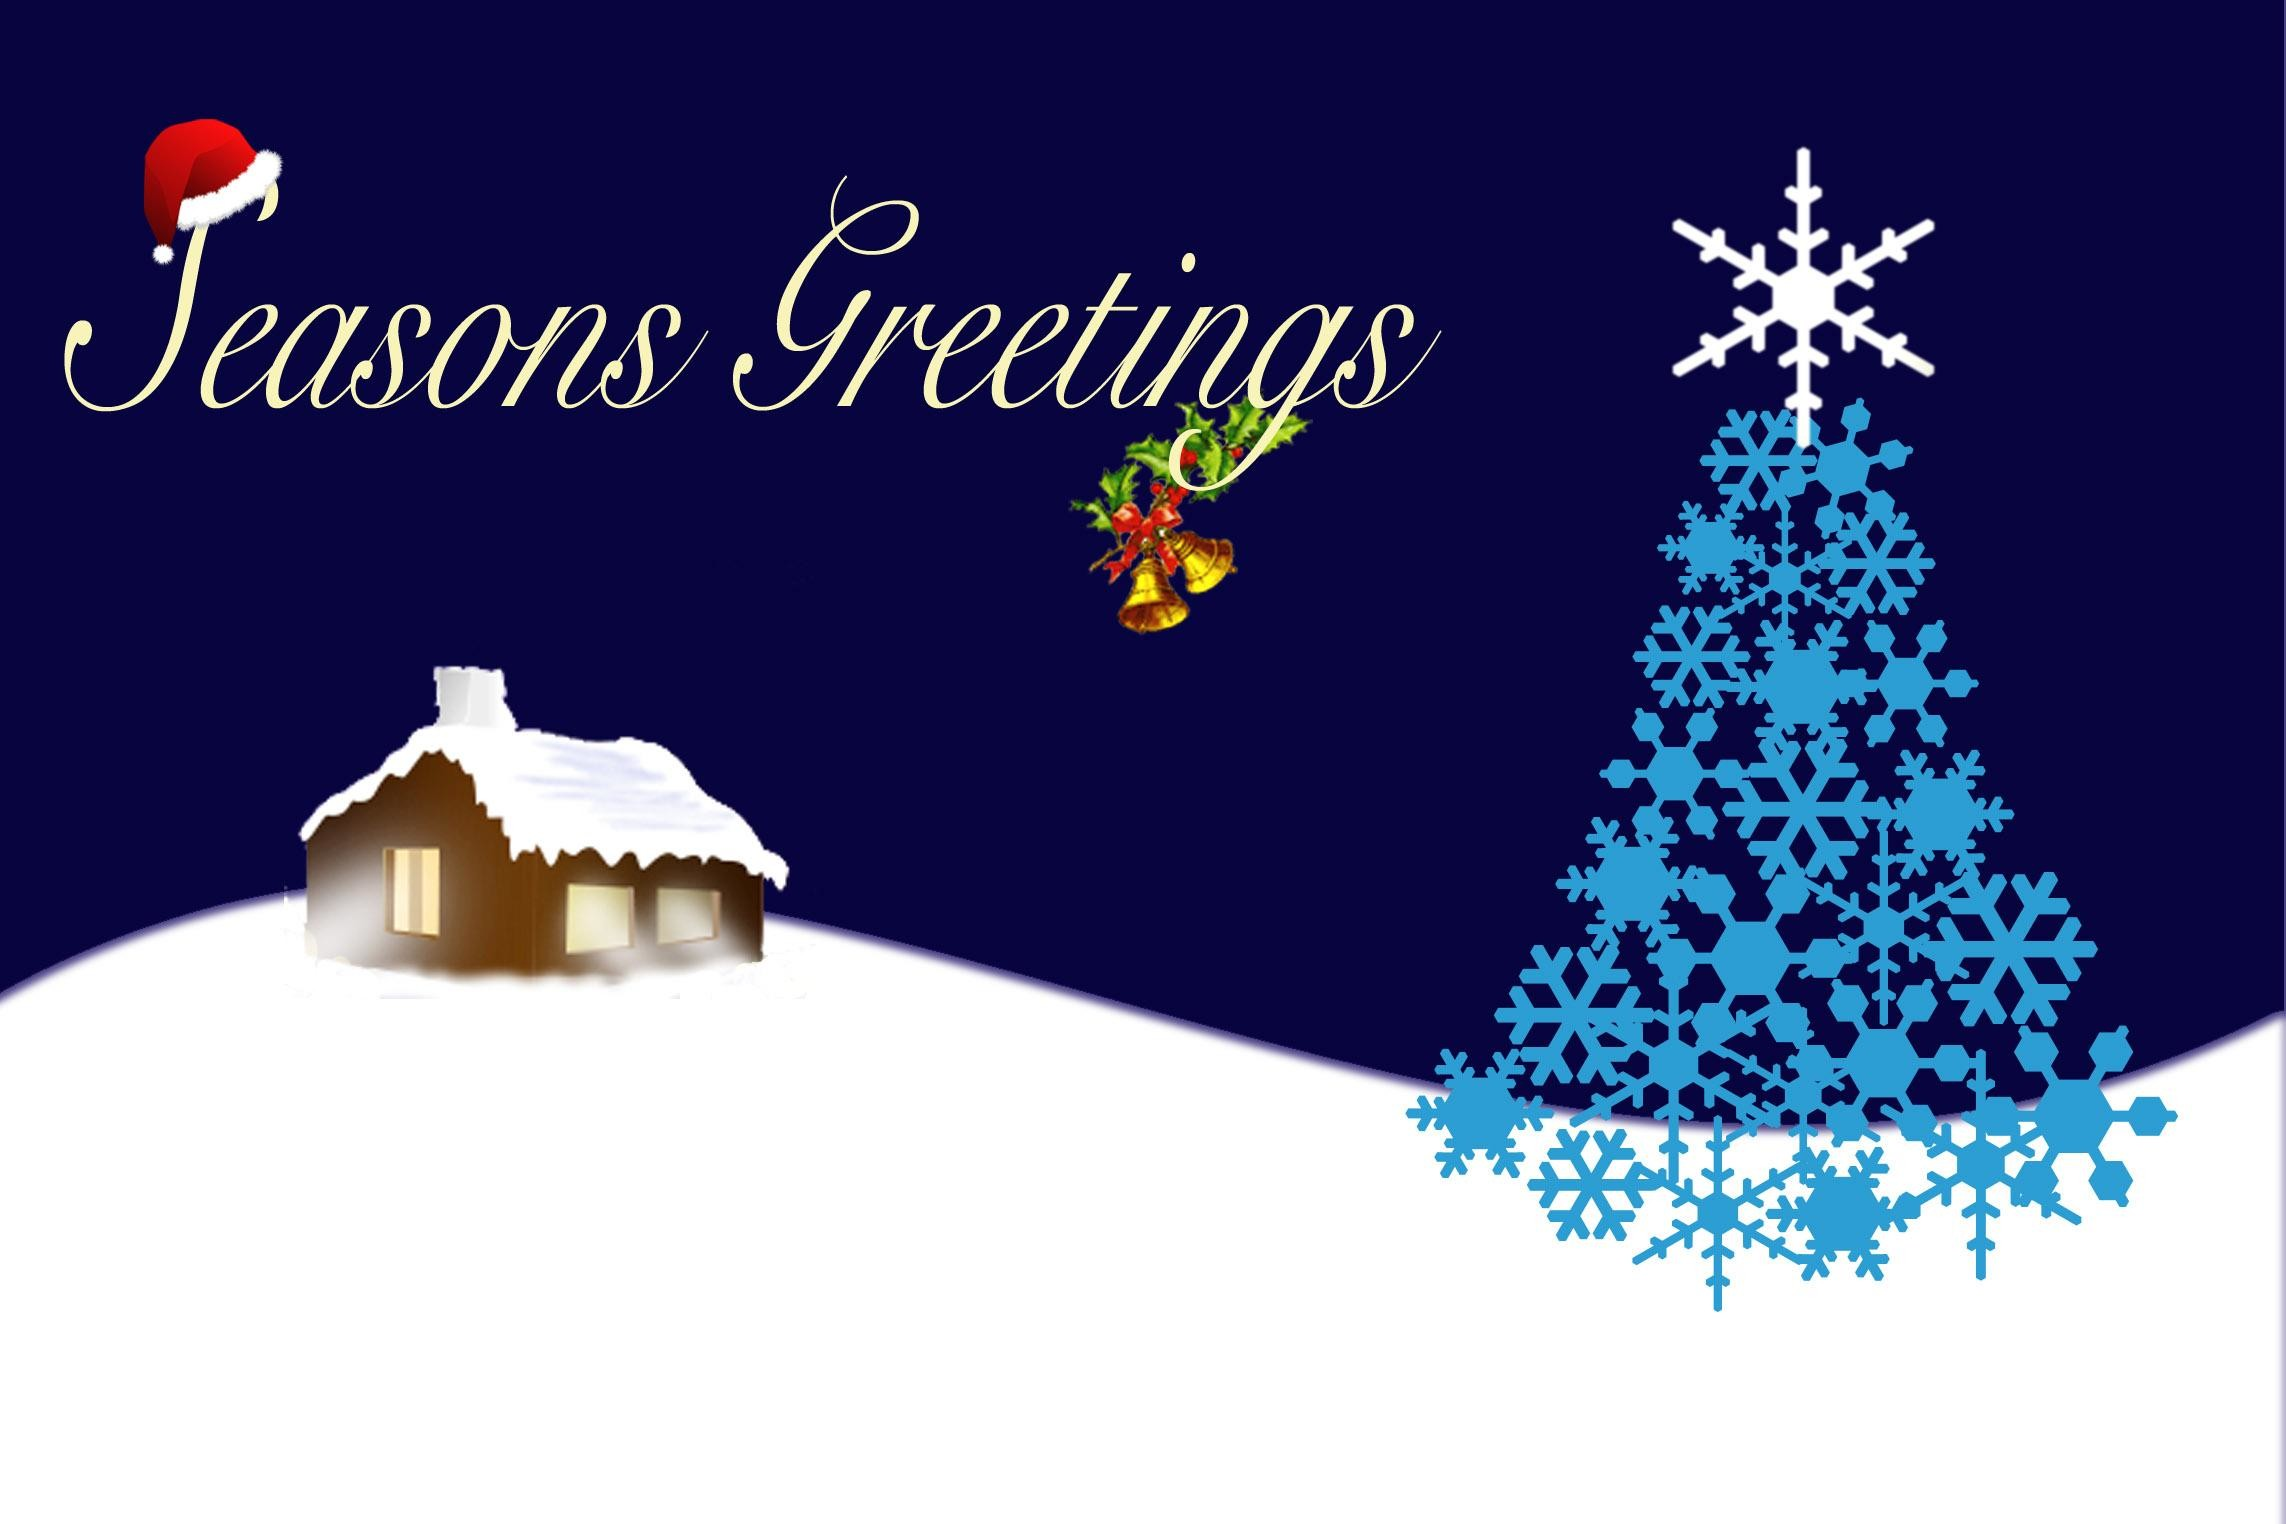 Seasons greetings wallpaper 58 images 2286x1524 hd seasons greetings wallpaper m4hsunfo